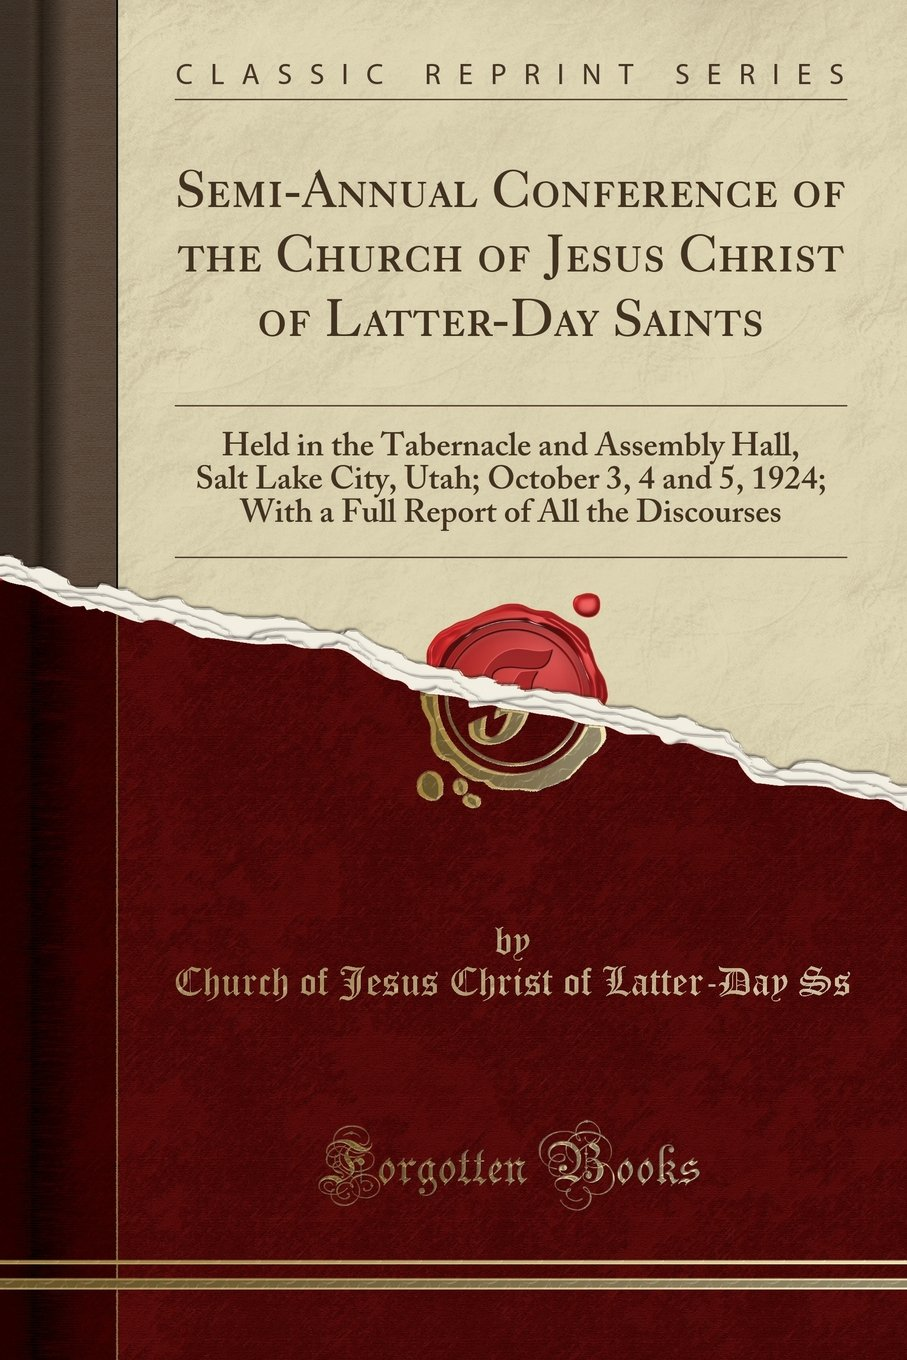 Semi-Annual Conference of the Church of Jesus Christ of Latter-Day Saints: Held in the Tabernacle and Assembly Hall, Salt Lake City, Utah; October 3, ... of All the Discourses (Classic Reprint) pdf epub